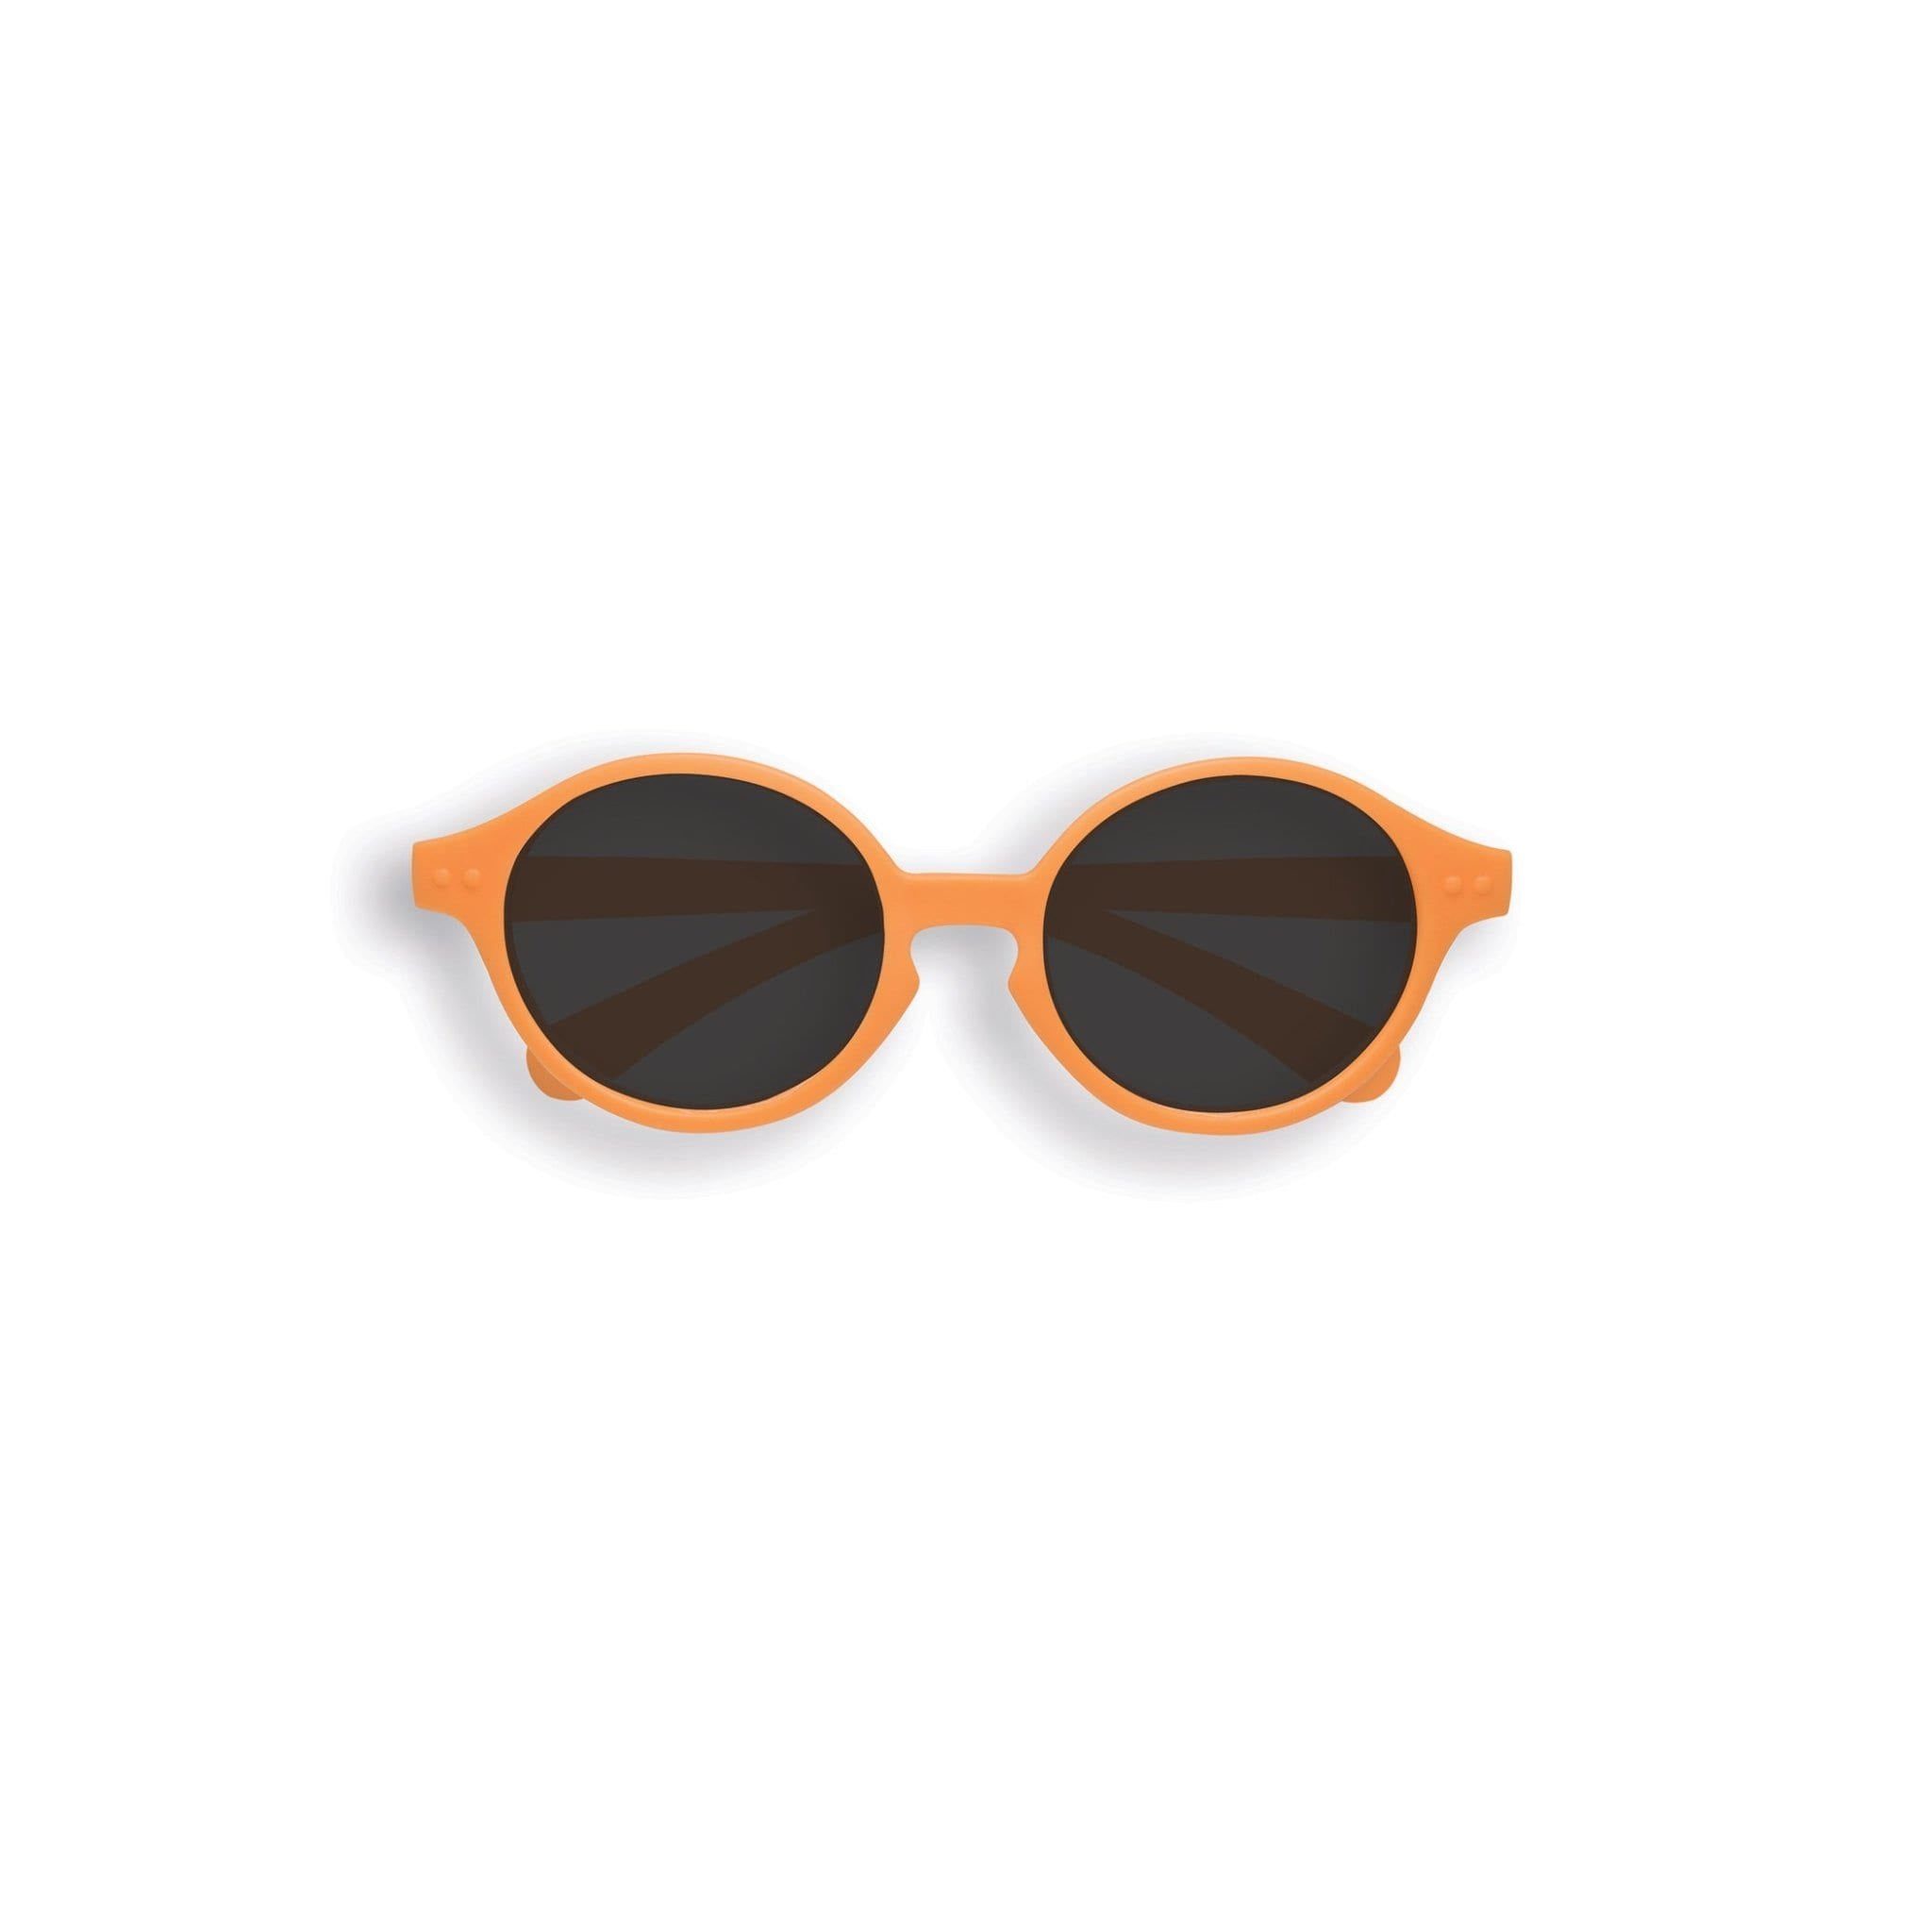 IZIPIZI Baby Sunglasses - Polarized / Neighborhood Goods